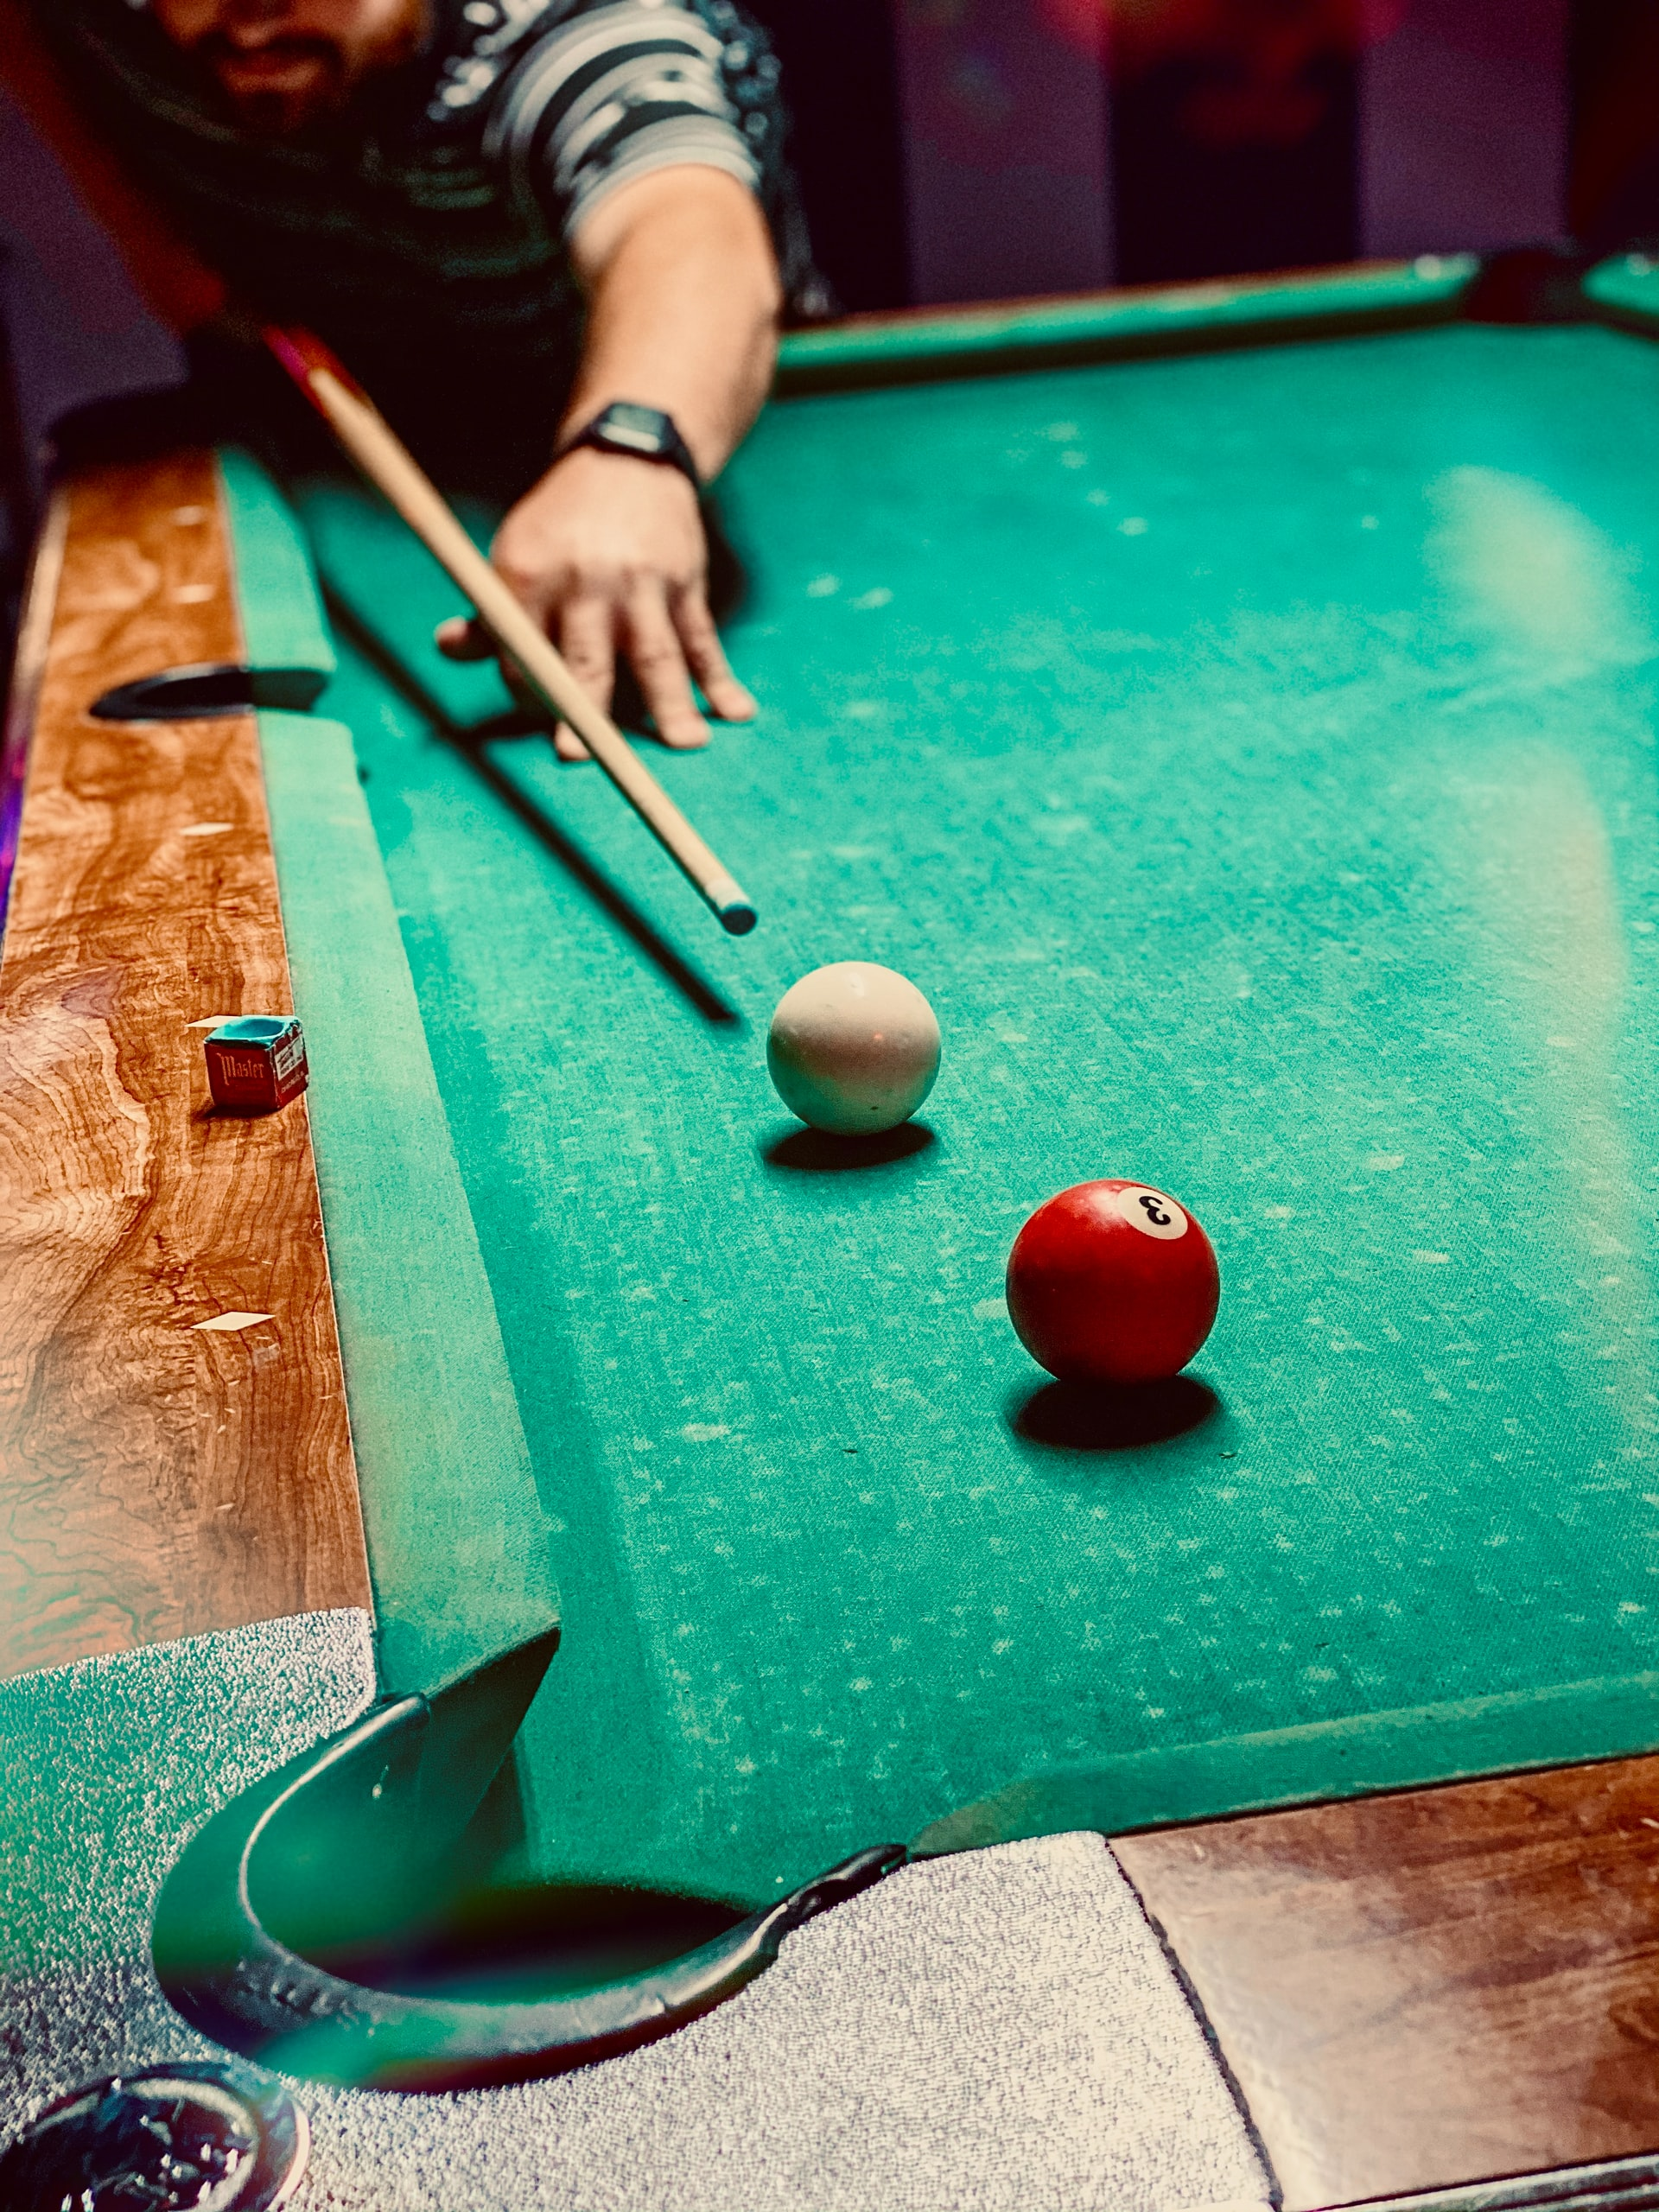 Man getting ready to hit the cue ball with pool cue